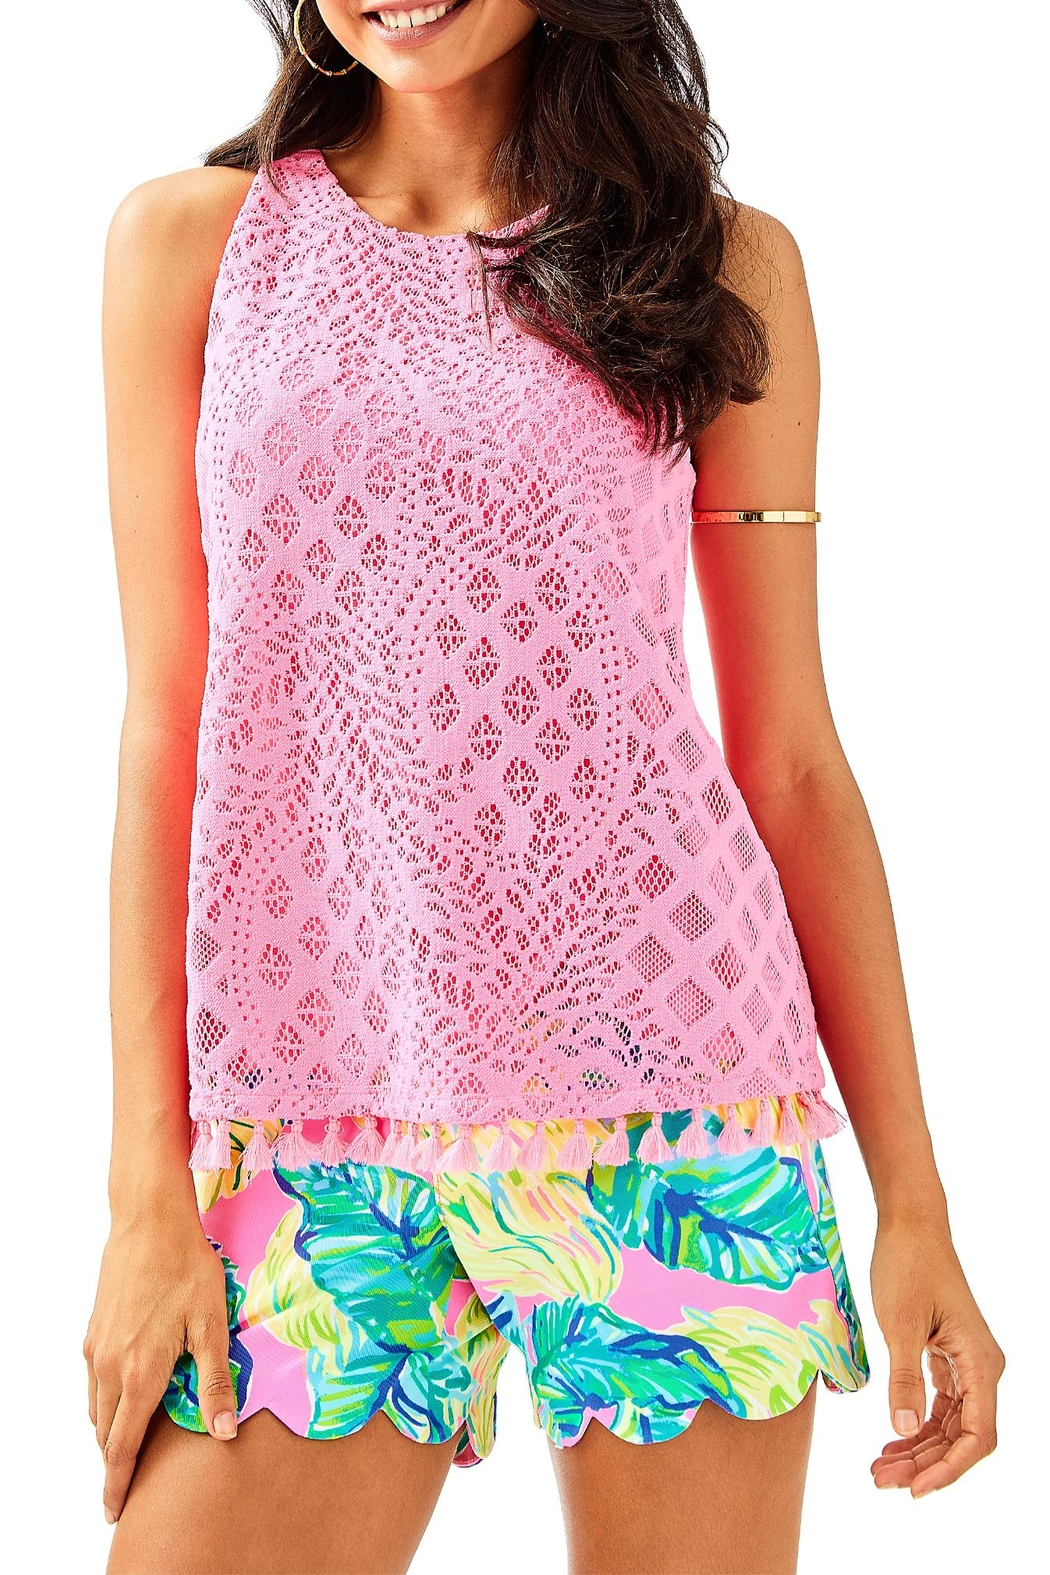 Lilly Pulitzer Lynn Top - Front Cropped Image